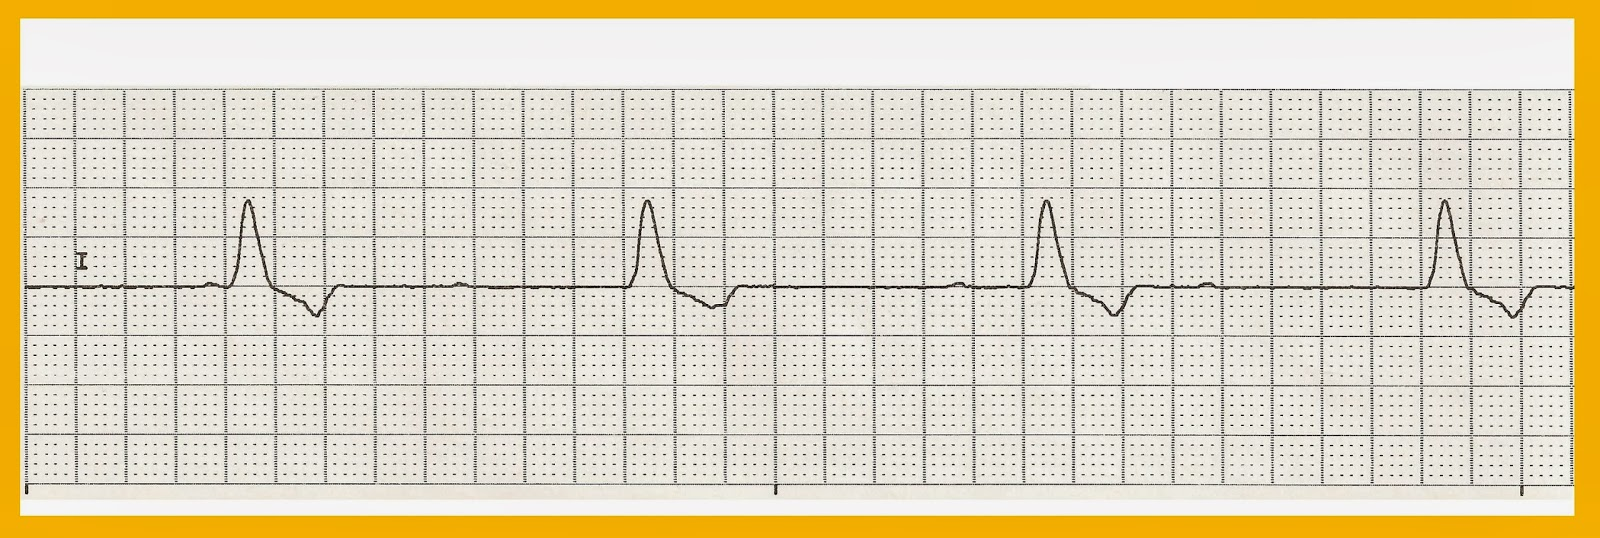 Blowjob cardiac monitor strip fucking gorgeous